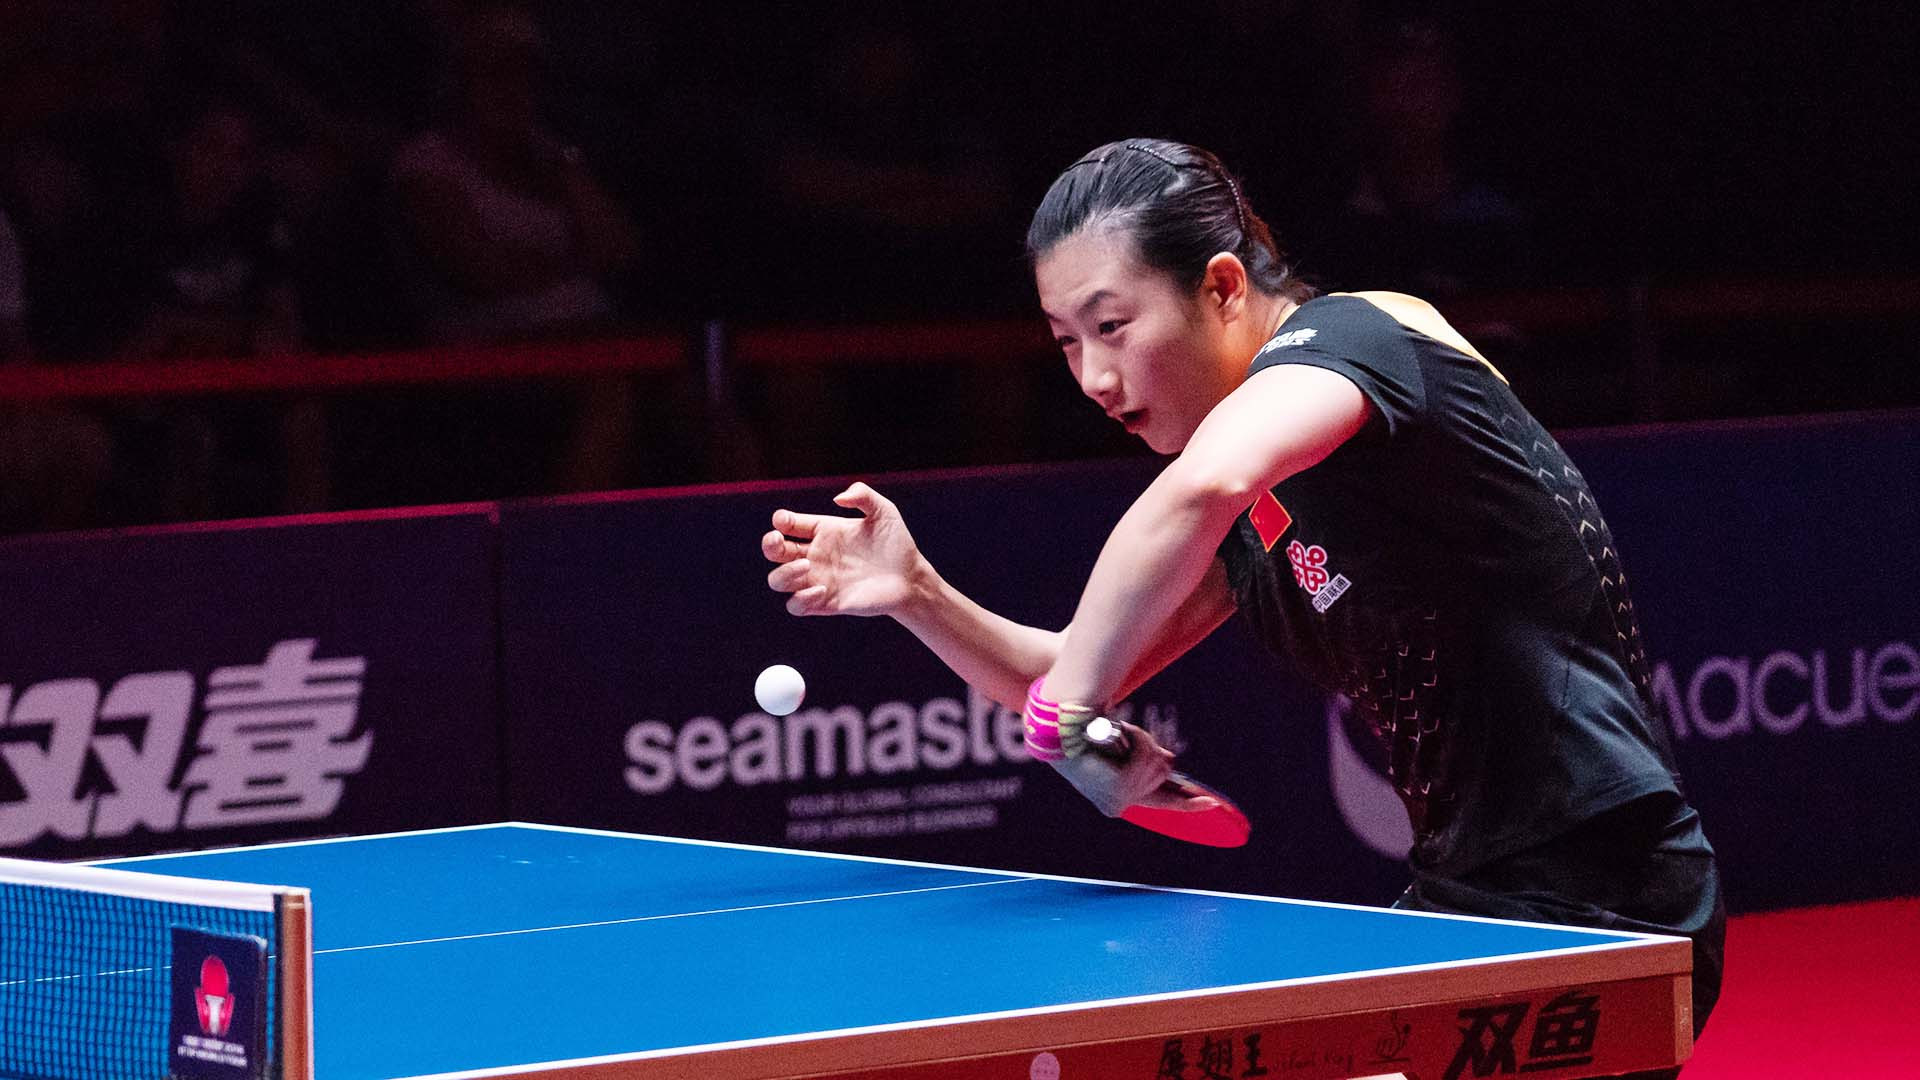 China's Rio 2016 champion Ding NIng was fully tested before winning the ITTF Bulgaria Open title ©ITTF